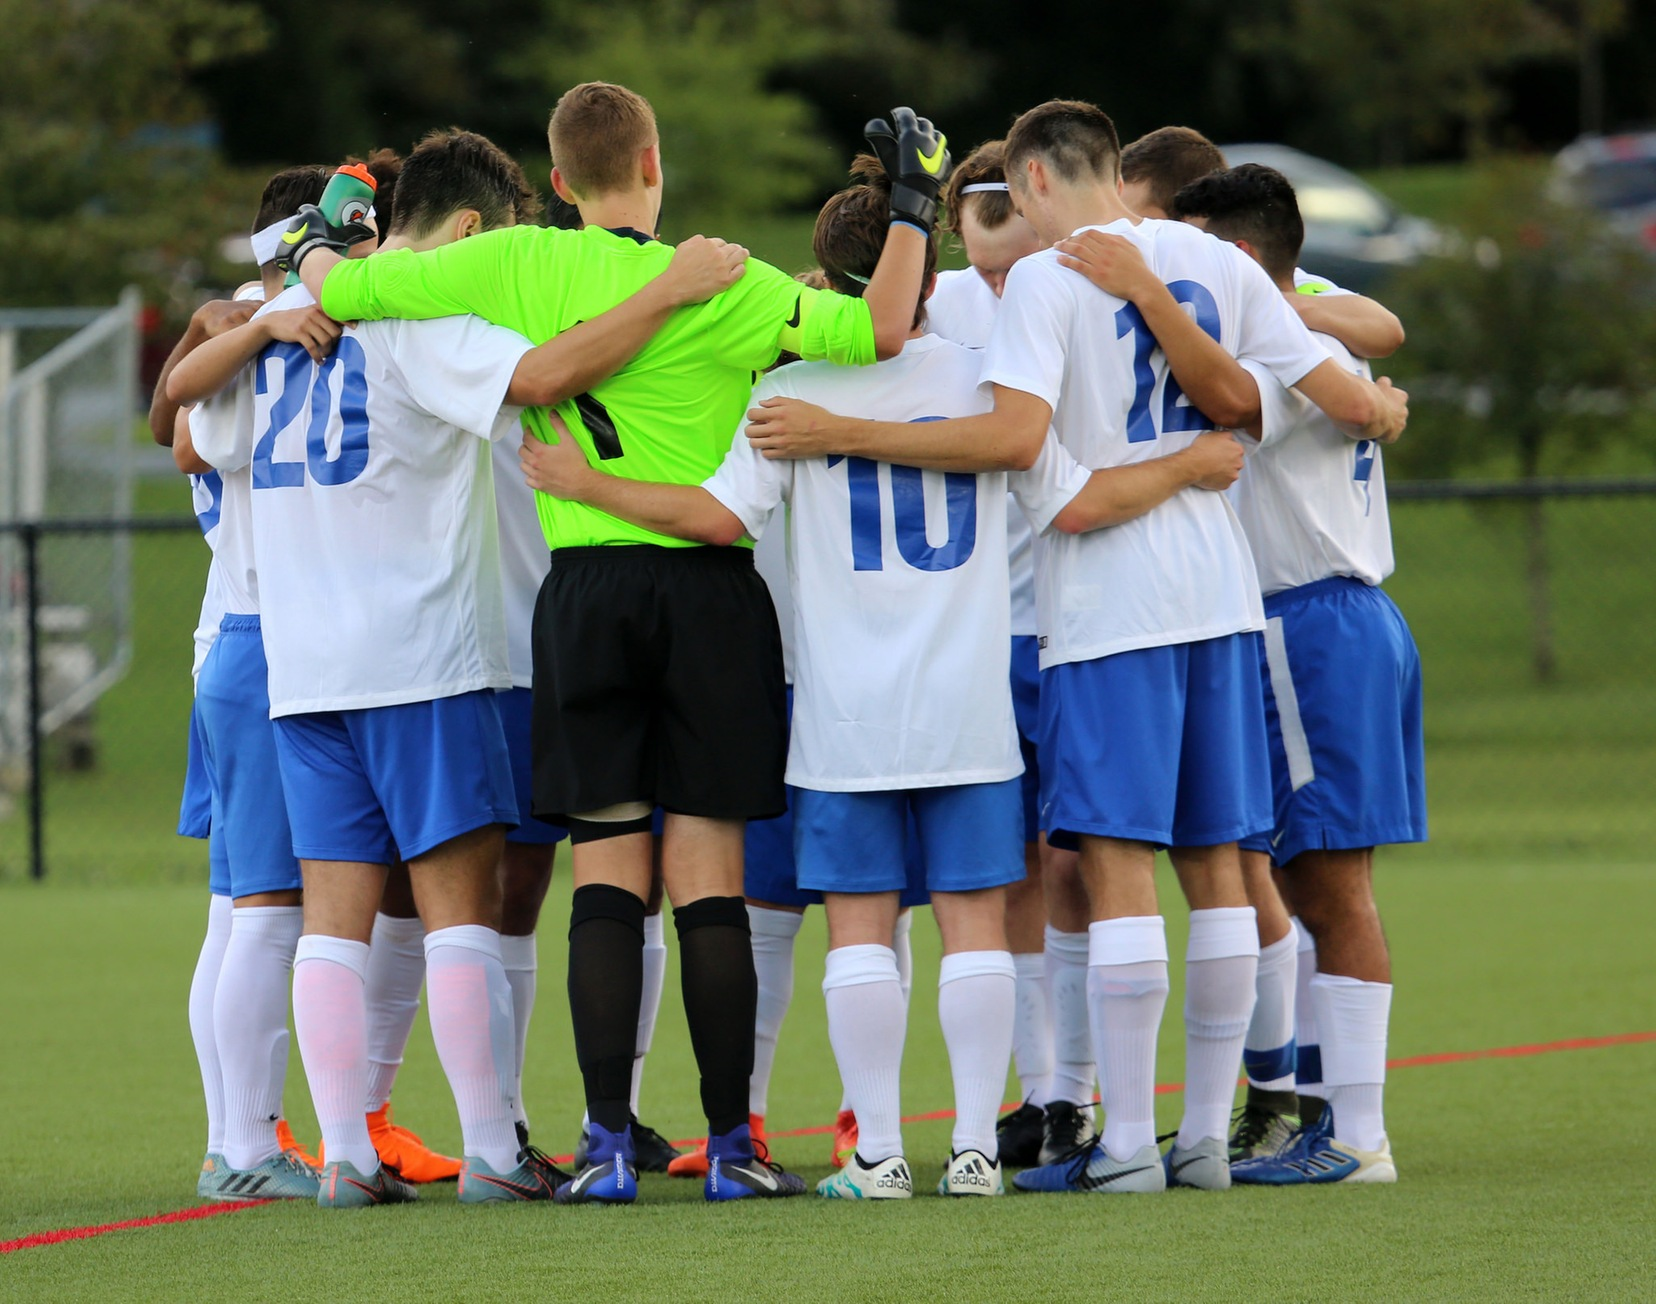 Brevard College Men's Soccer to Hold ID Clinic on Saturday, April 27